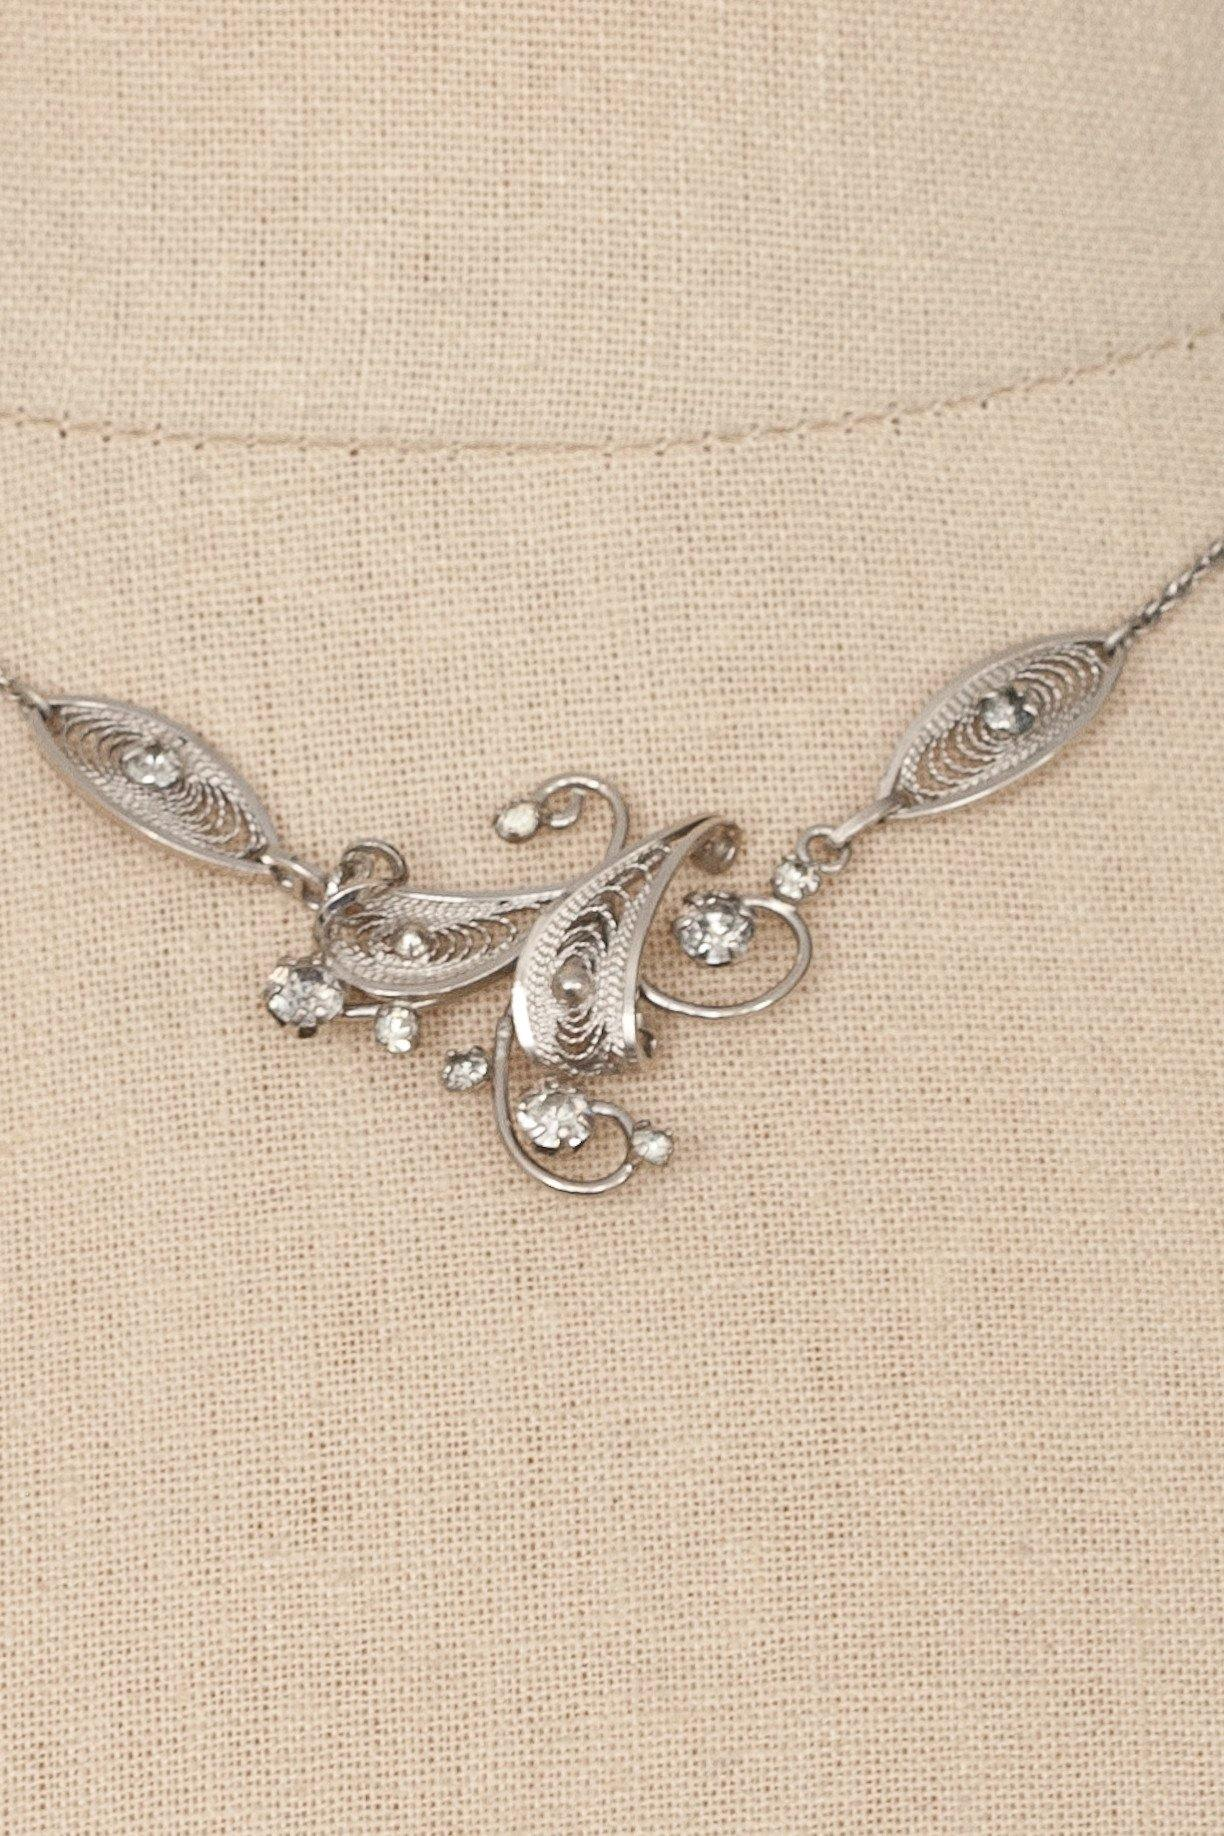 50's__Vintage__Sterling Silver Dainty Necklace